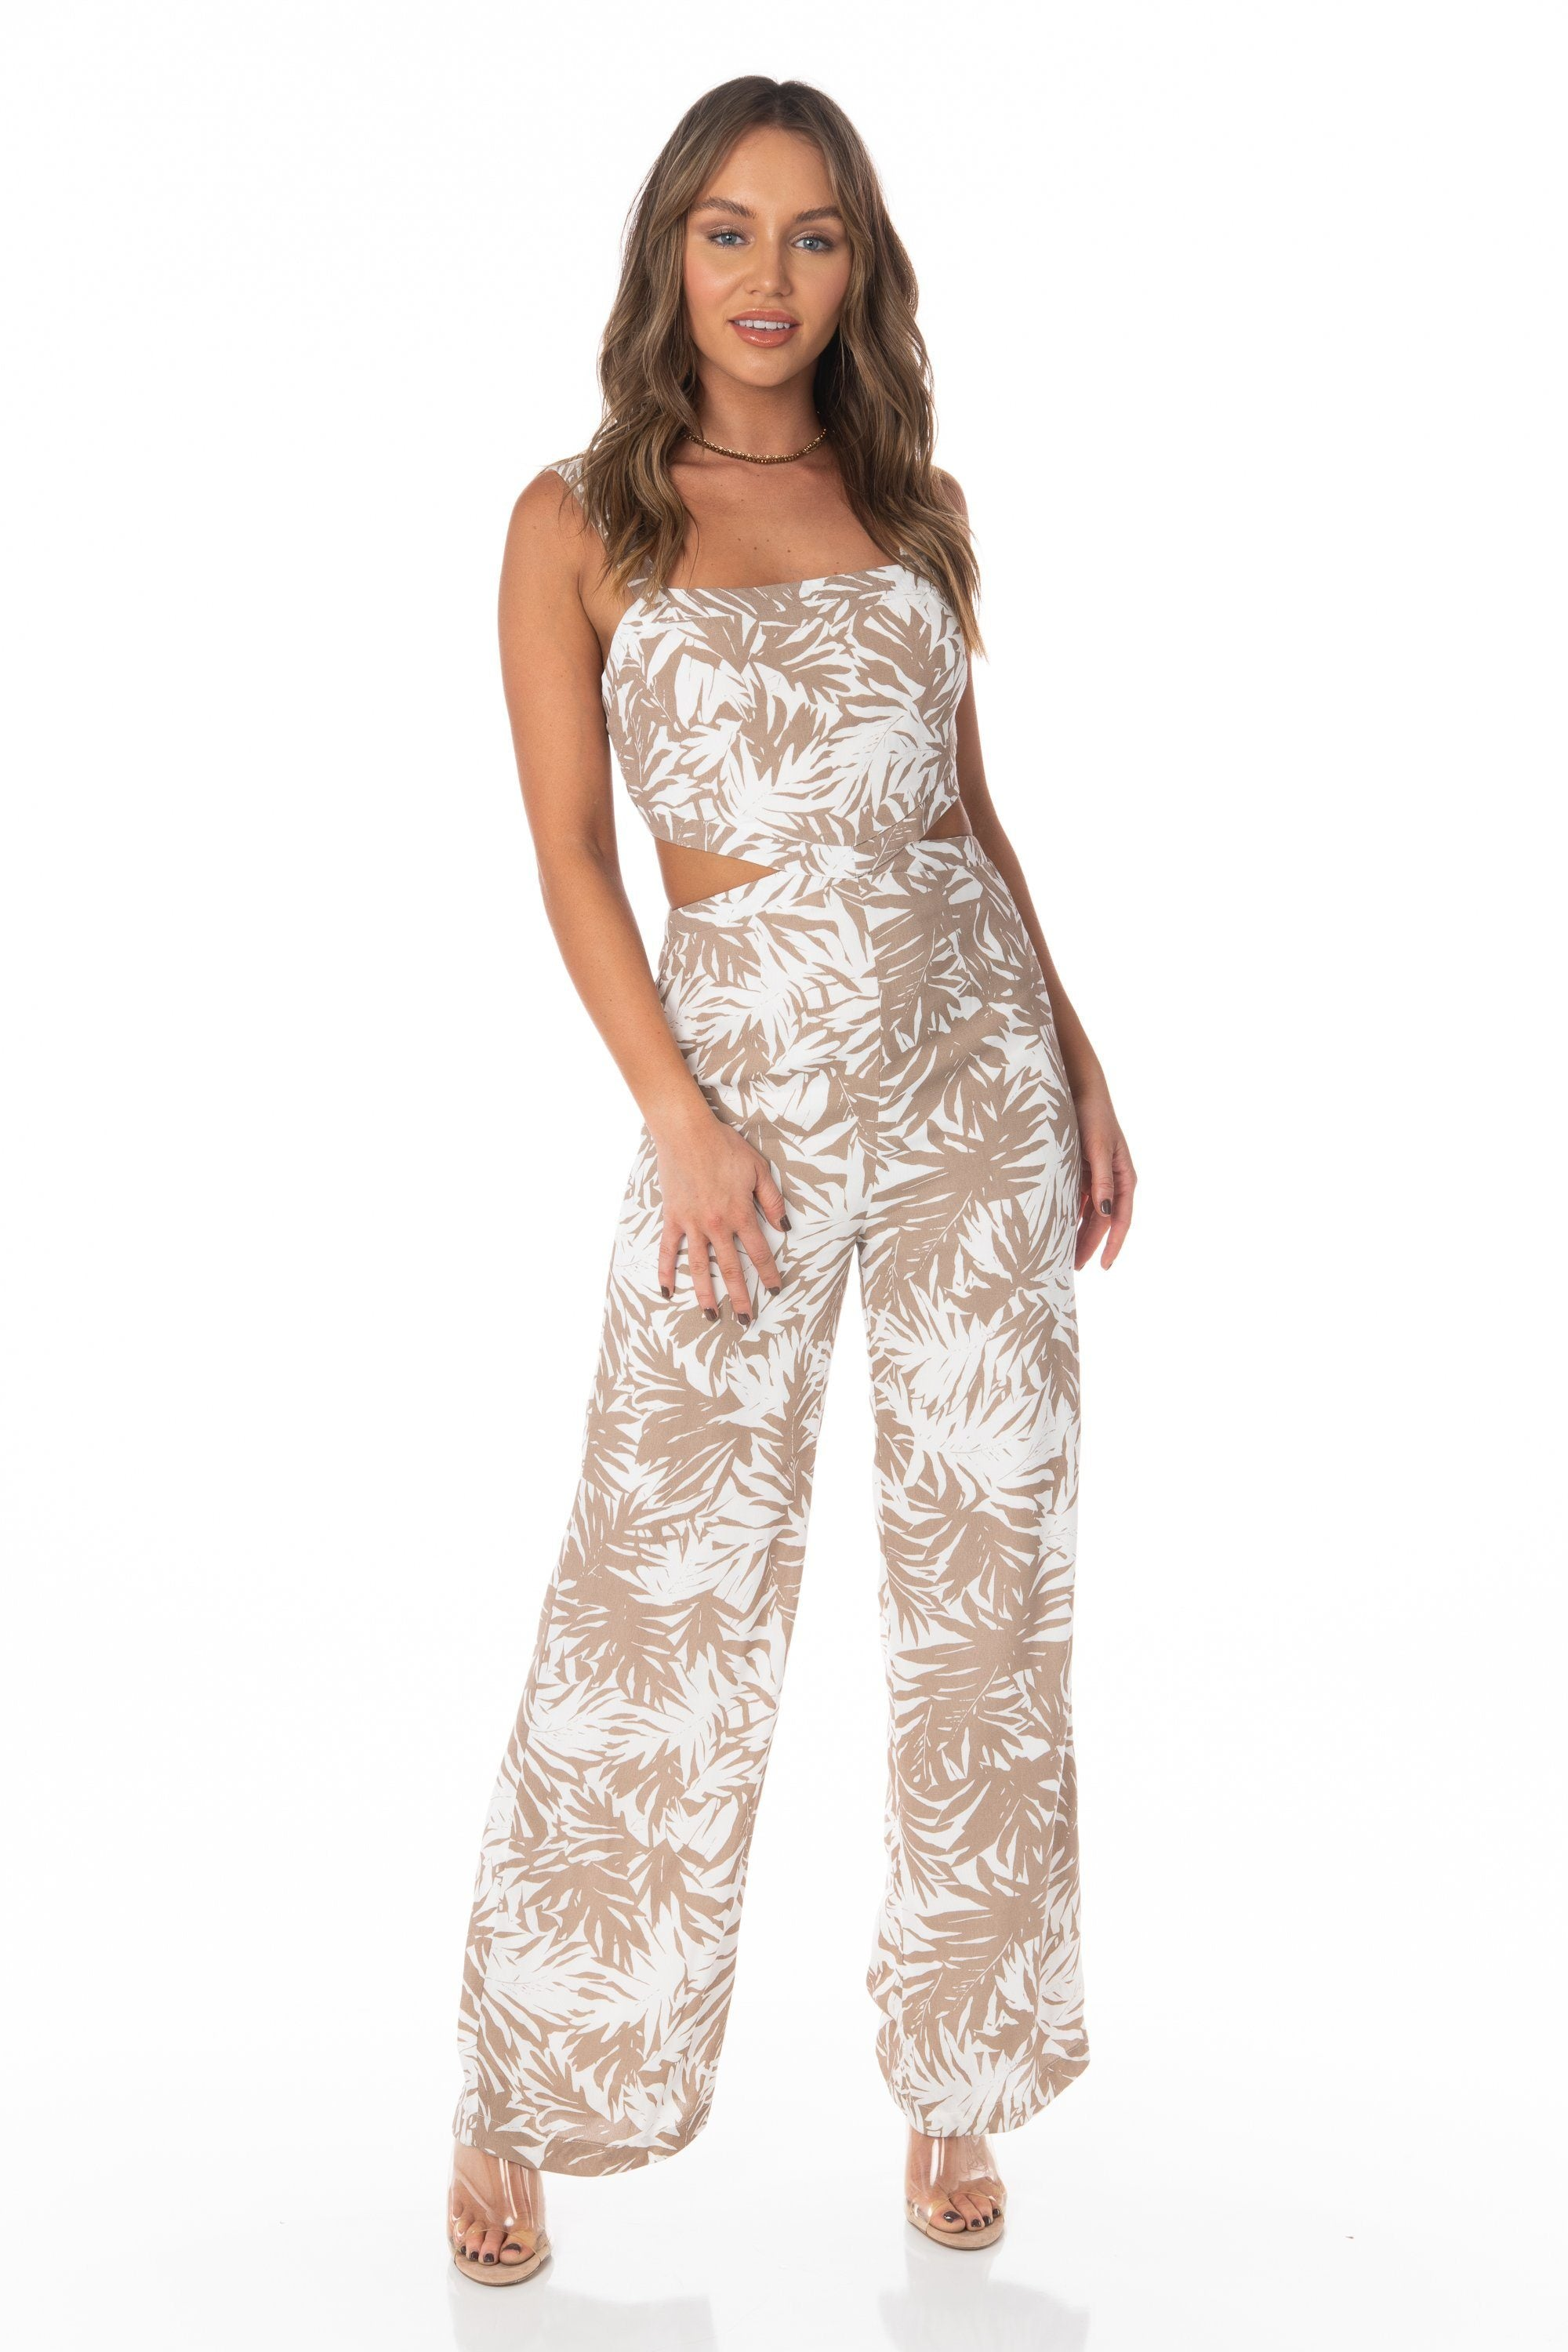 Windansea White Tropical Jumpsuit Rompers & Jumpers HYPEACH BOUTIQUE